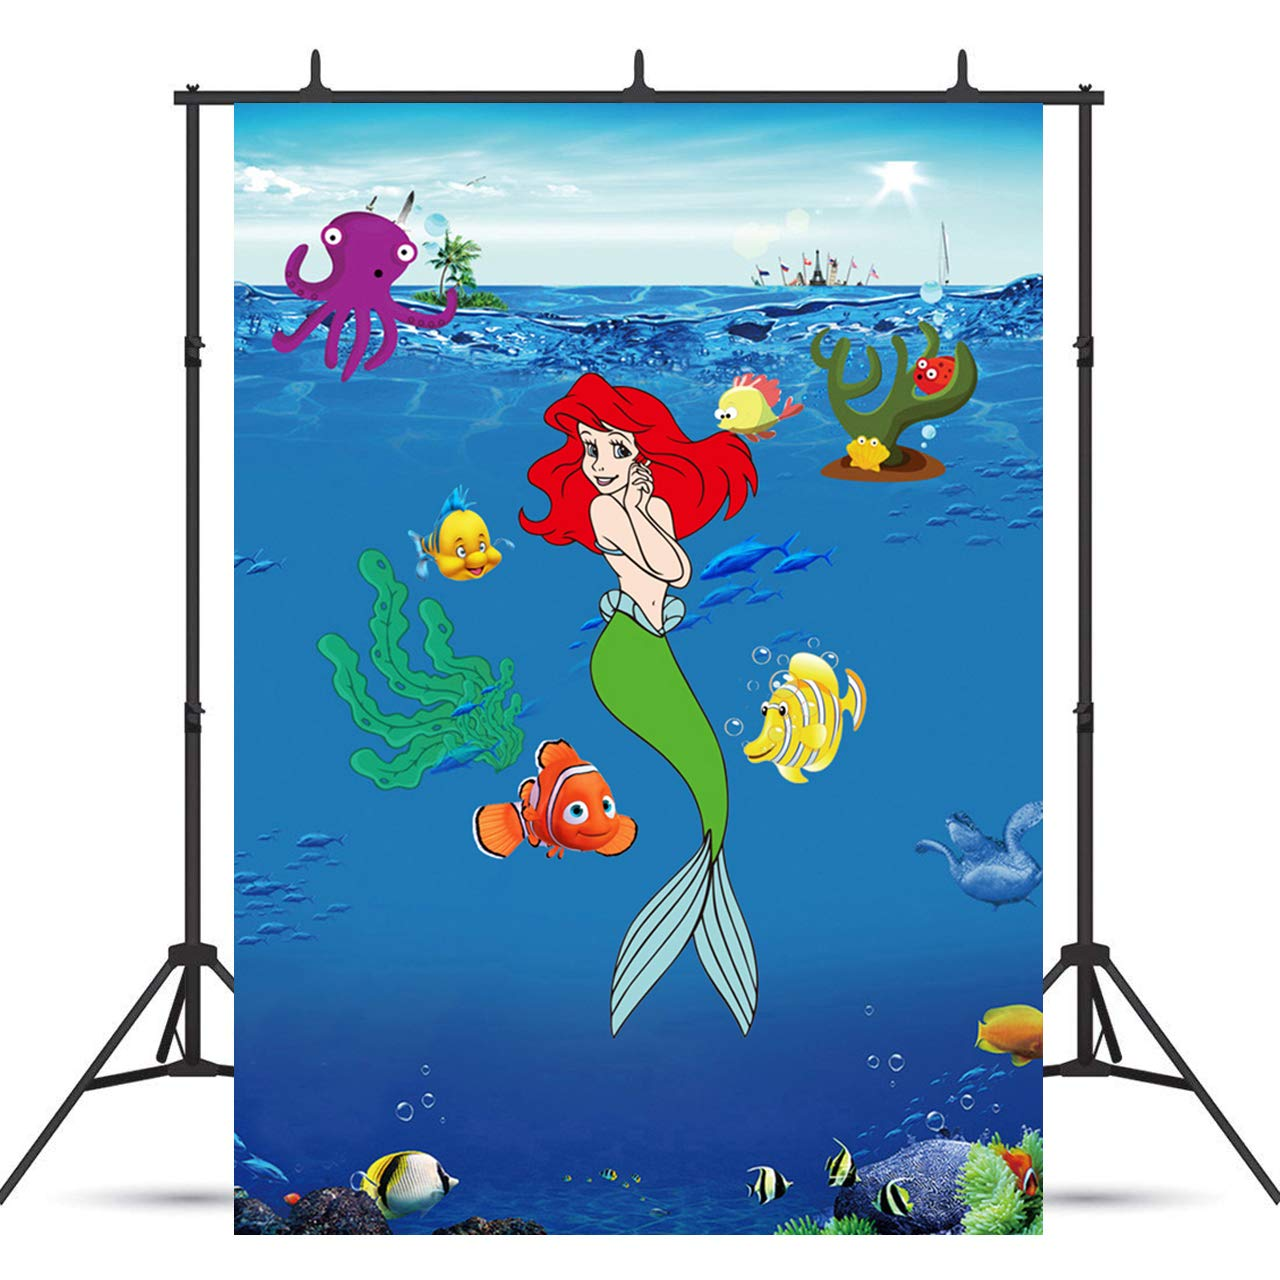 VVM 7x5ft Mermaid Backdrop Underwater World Photography Background for Baby Shower Pictures Childrens Theme Birthday Party Decoration Props LXVV836